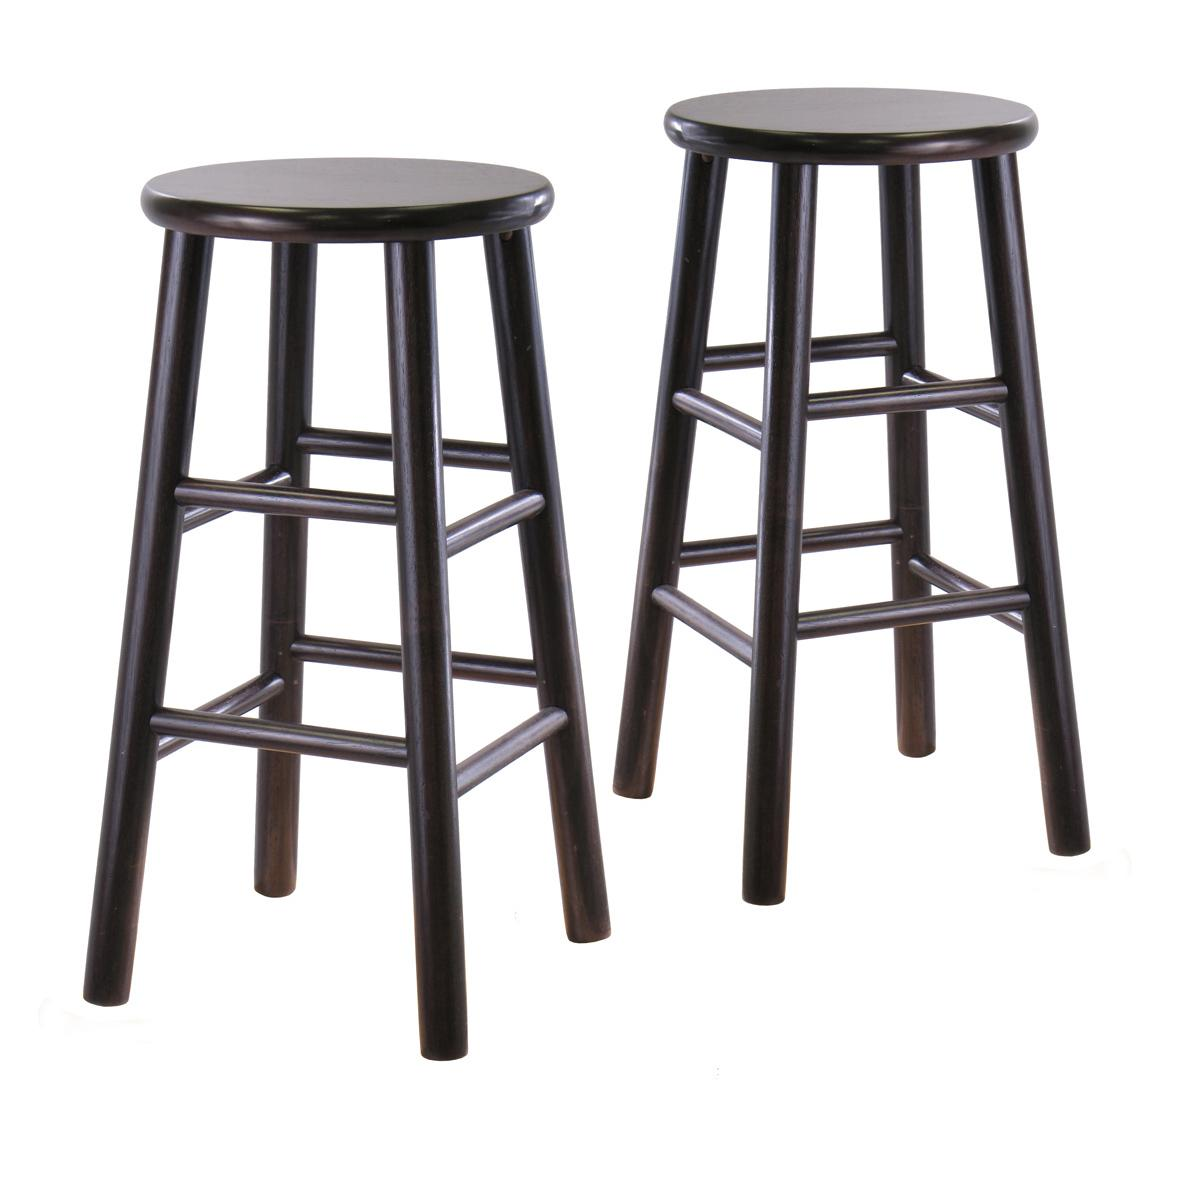 Amazon Com Winsome 92784 Tabby Stool Espresso Kitchen